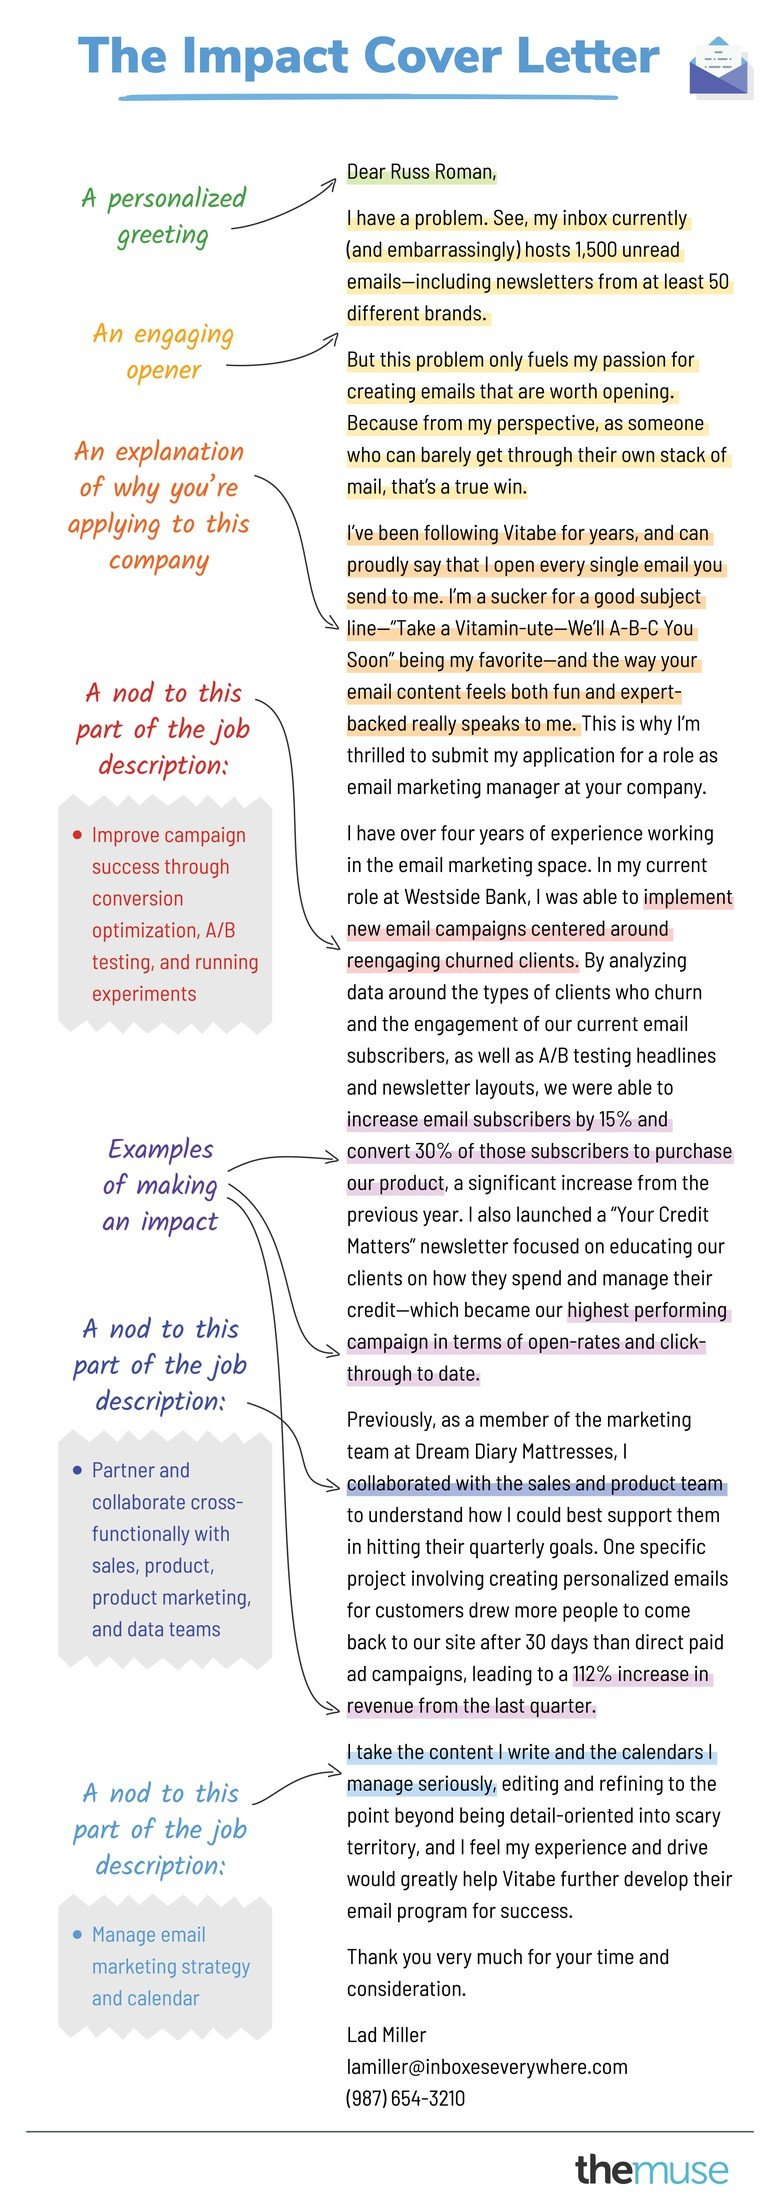 infographic of cover letter example impact cover letter